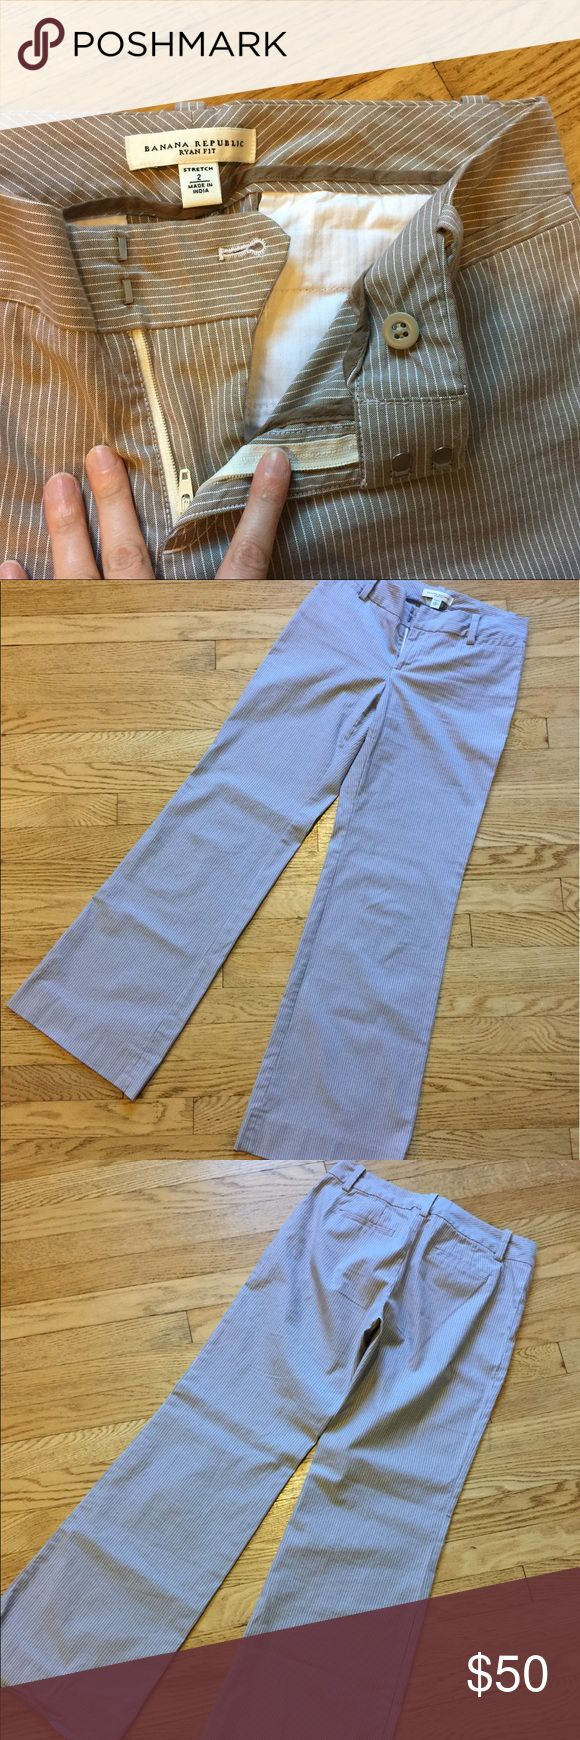 """NWOT Banana Republic """"Ryan Fit"""" Stretch Trouser Color is true to first picture. Very stylish and in MINT condition. Price negotiable 💗 Banana Republic Pants Trousers"""